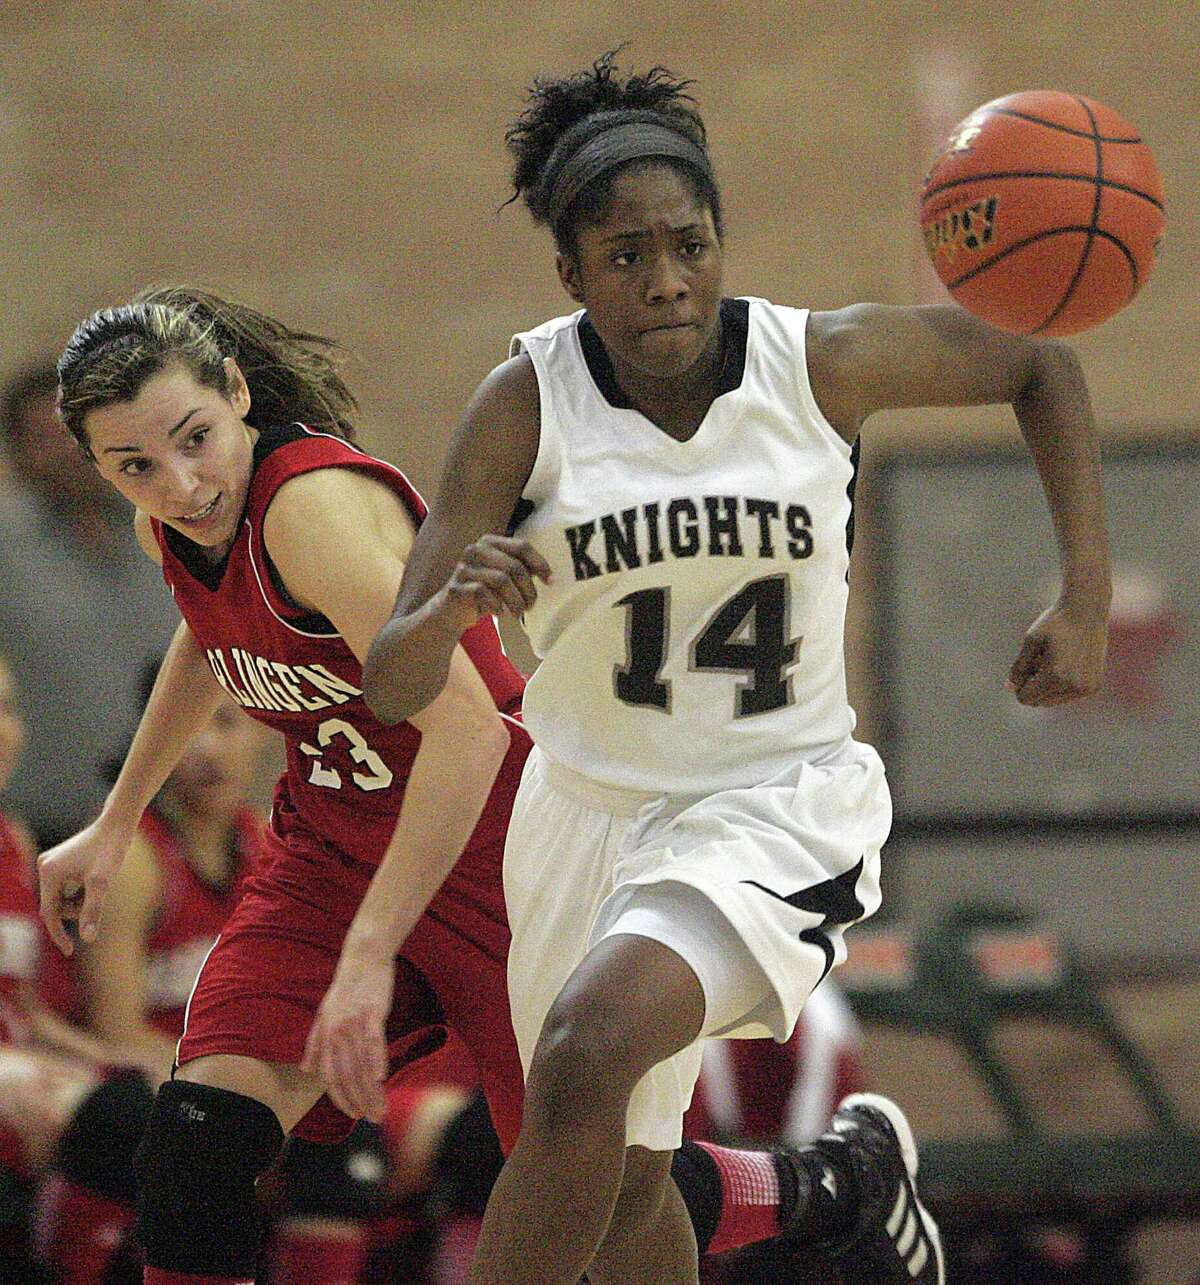 Steele guard McKenzie Calvert hopes to help the Knights take the next step this season by making another run at the Class 5A state title that barely eluded them in March.